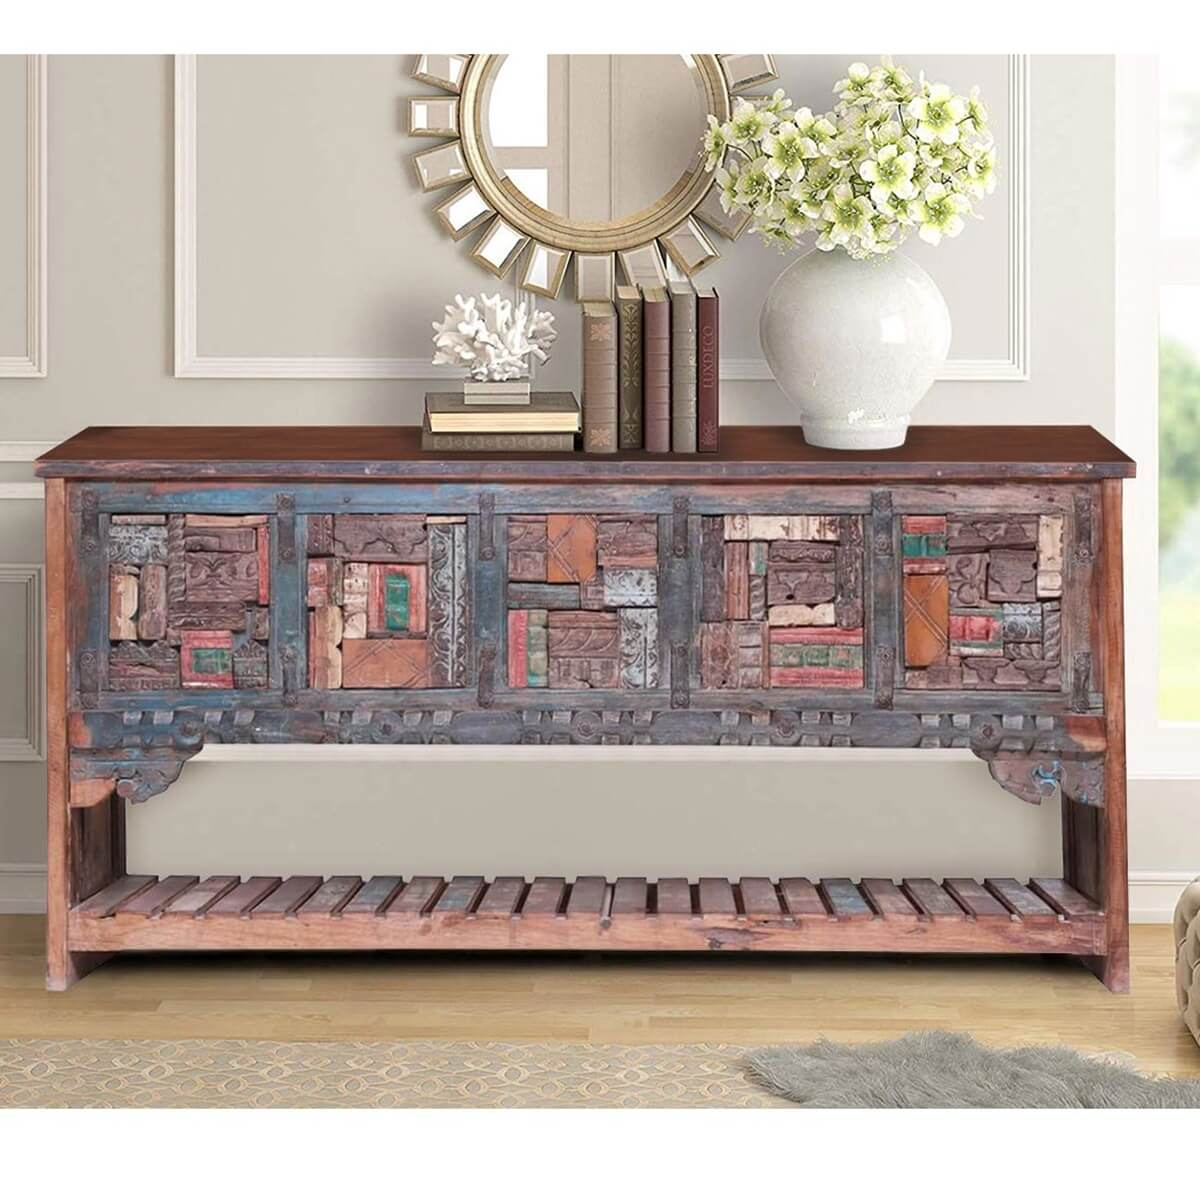 Tacoma 2 Tier Carved Mosaic Reclaimed Wood Entryway Console Table